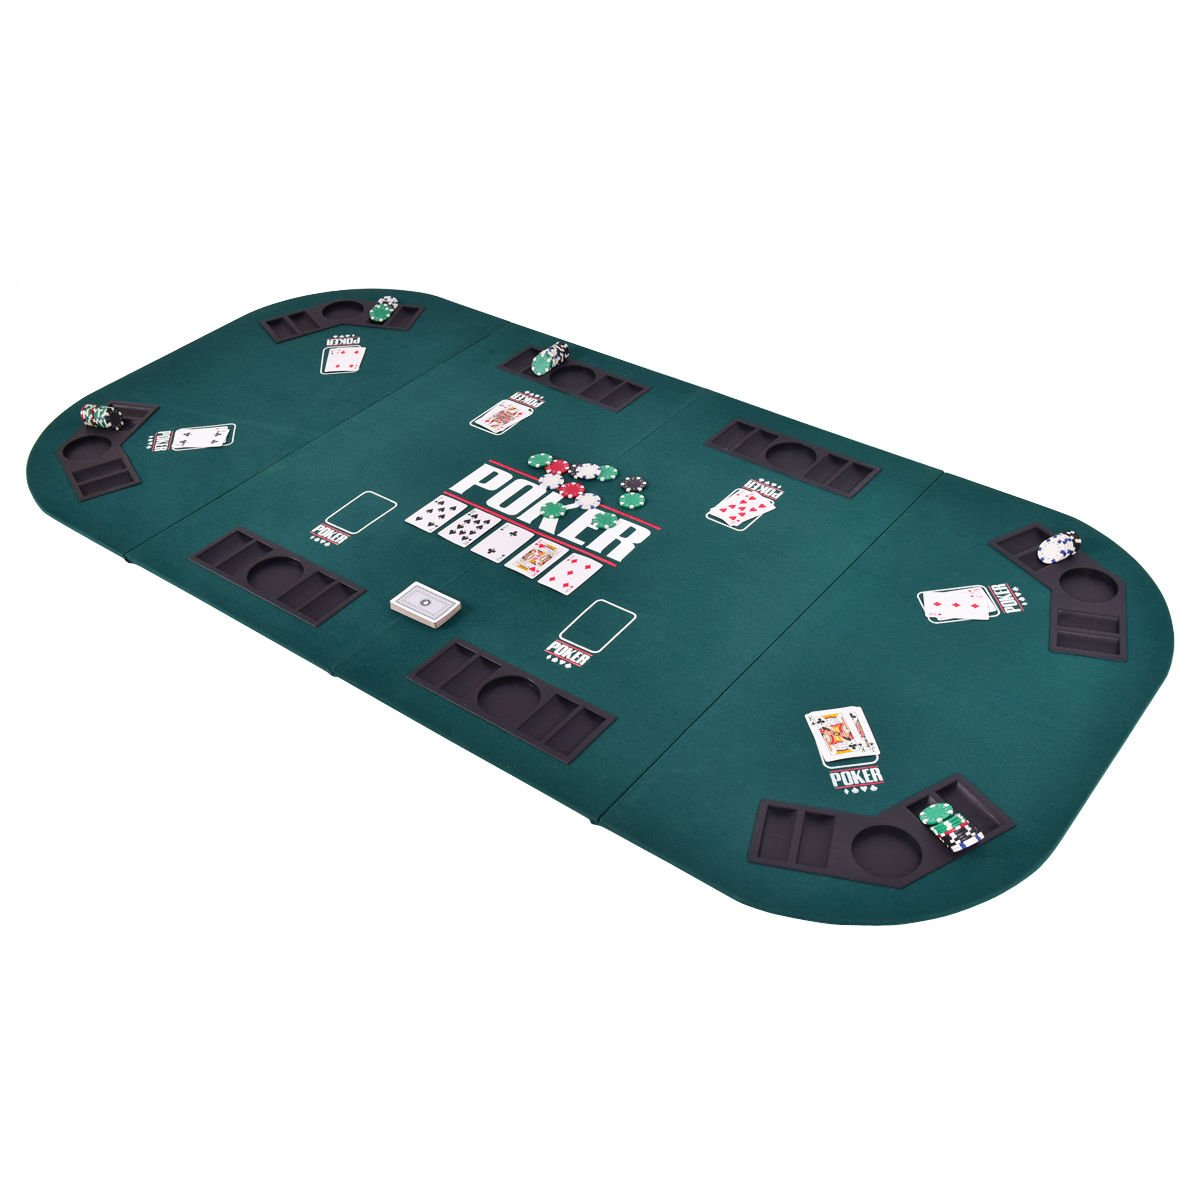 Etonnant Amazon.com : Gaintex Folding Poker Table Top Four Fold 8 Player Poker Table  Top U0026 Carrying Case Portable, Green : Sports U0026 Outdoors